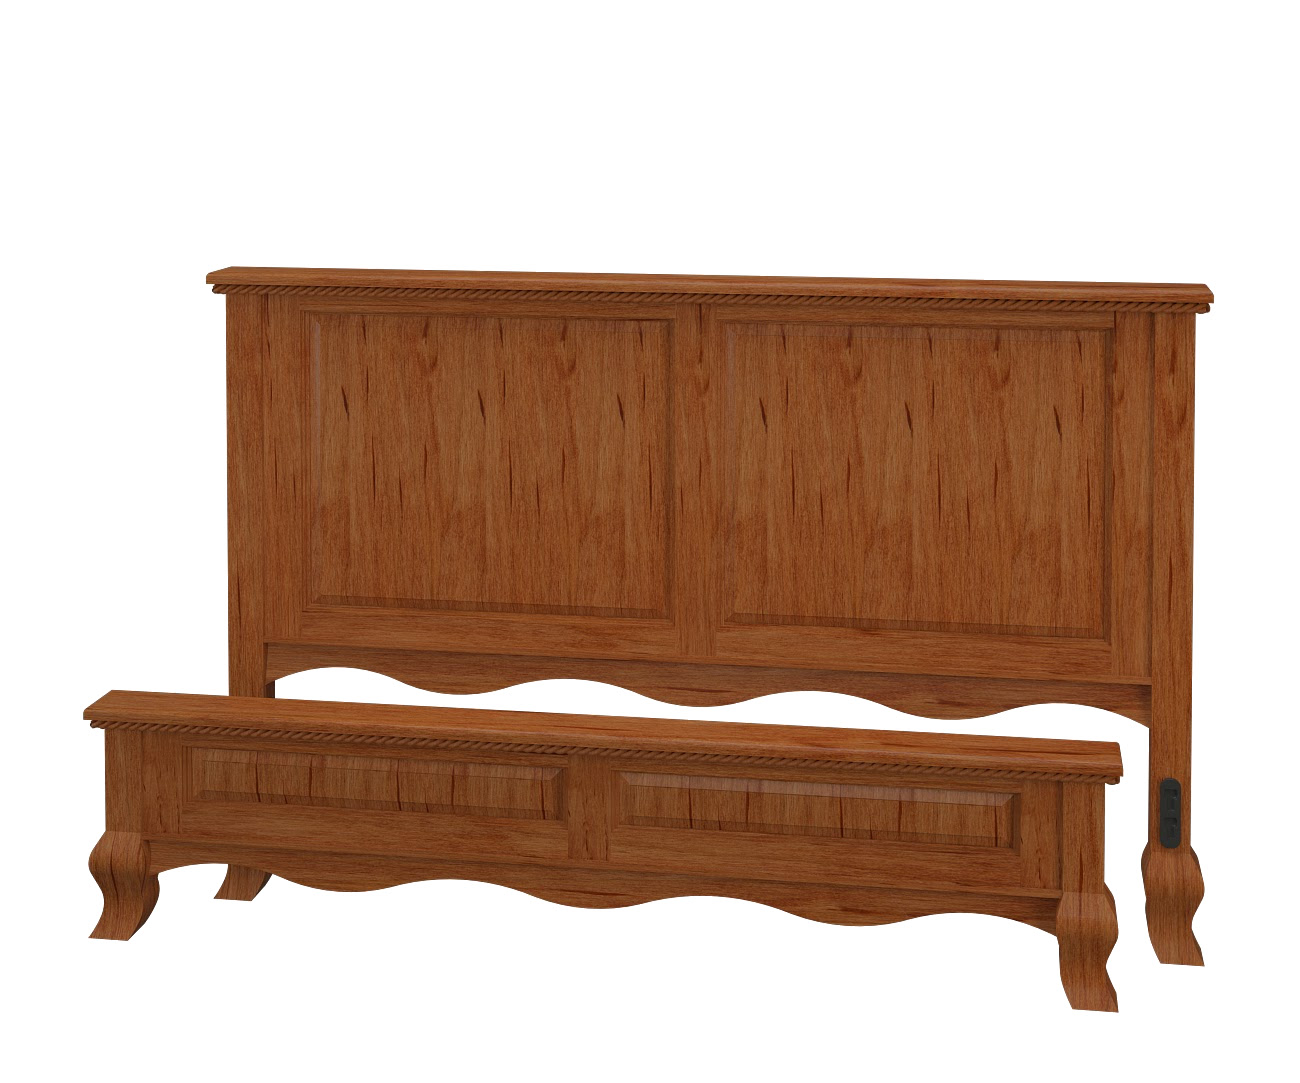 Queen anne platform bed solid wood platform bed in the for Queen anne style bed